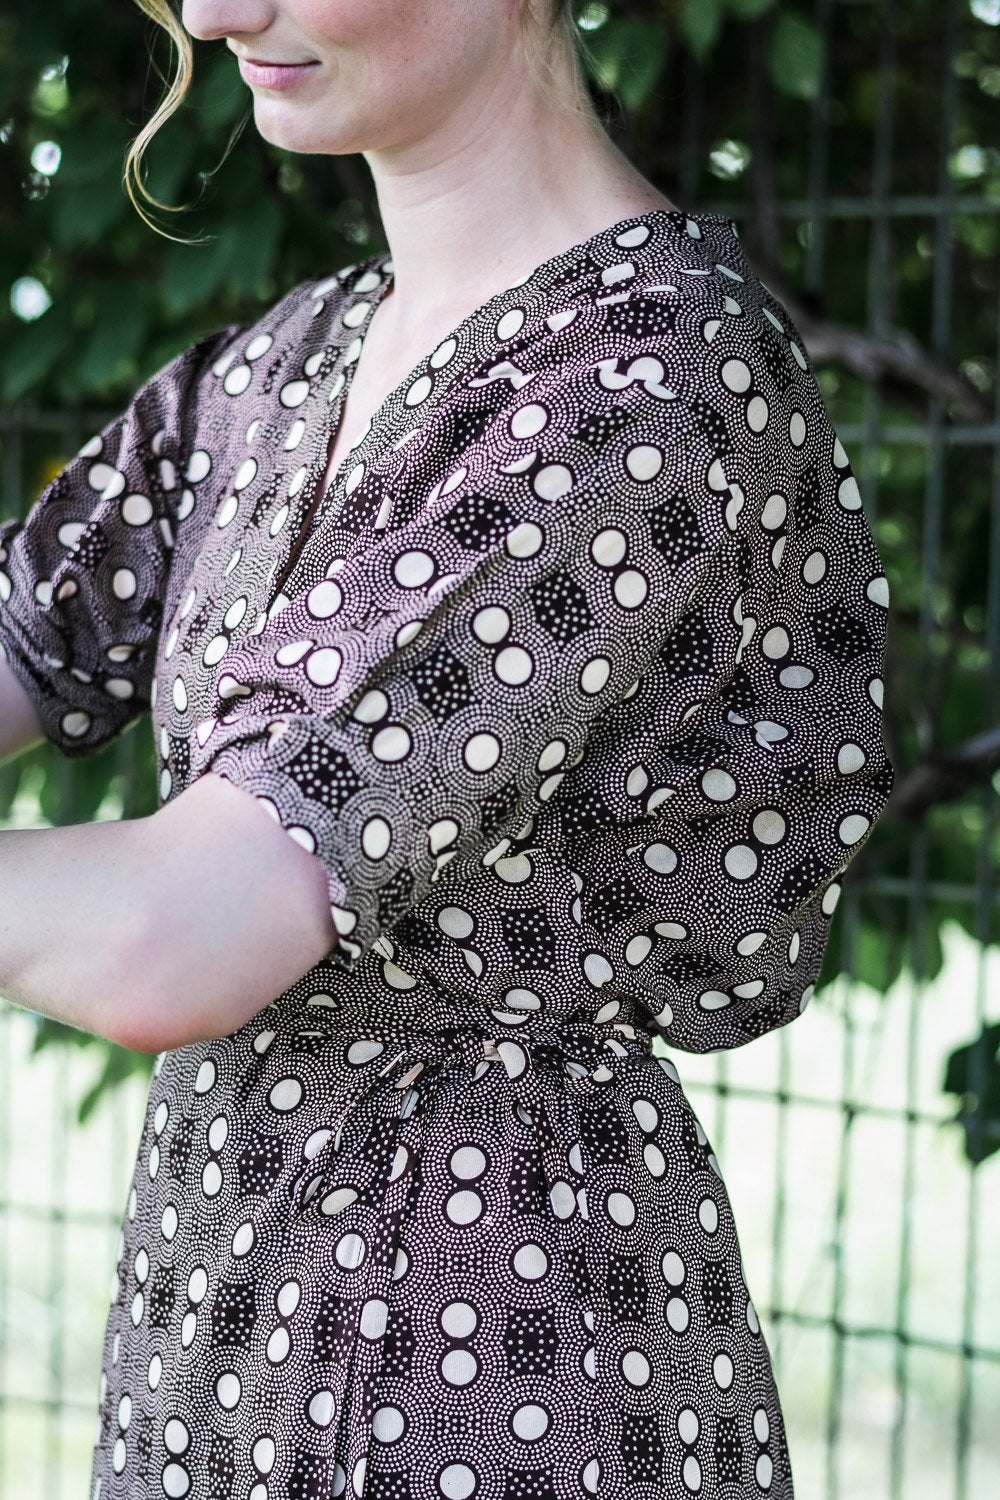 Dolman Wrap Dress • Dark Brown w/ Cream Polka Dots